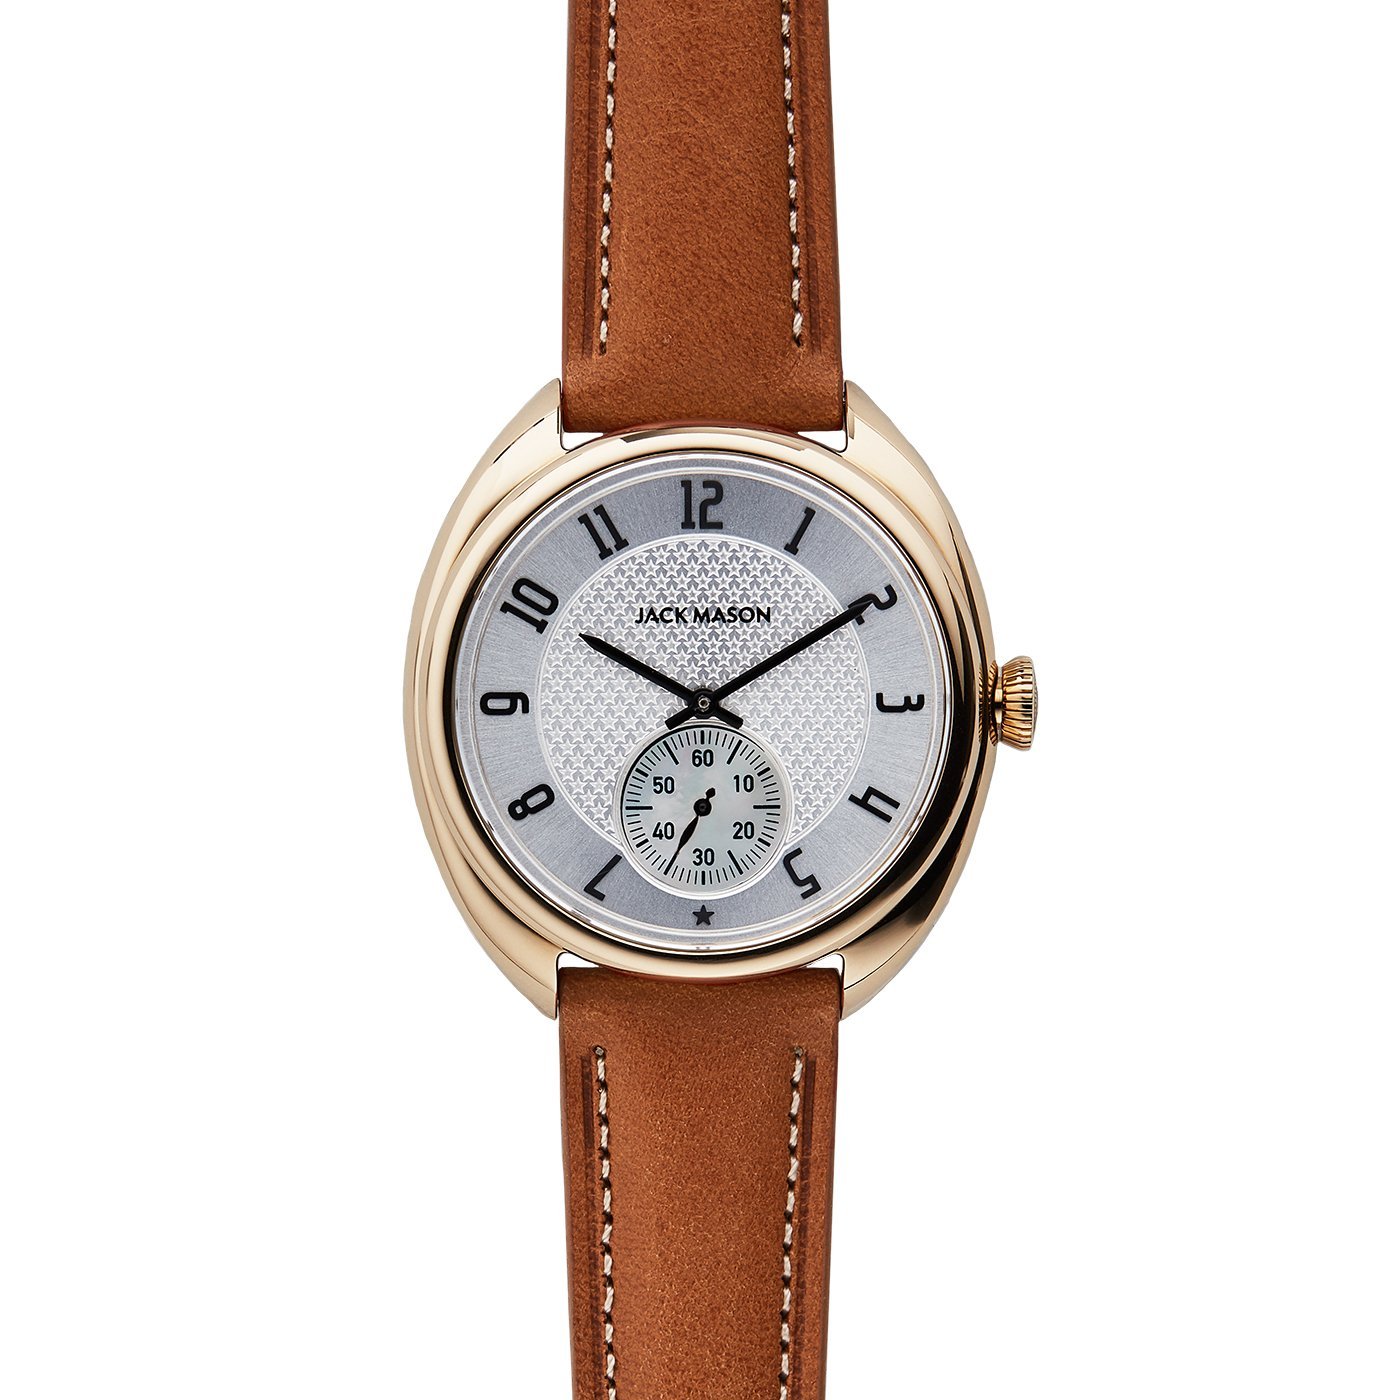 Jack Mason Women's Watch Issue No 1 YG Sub Second White Dial Tan Leather Strap